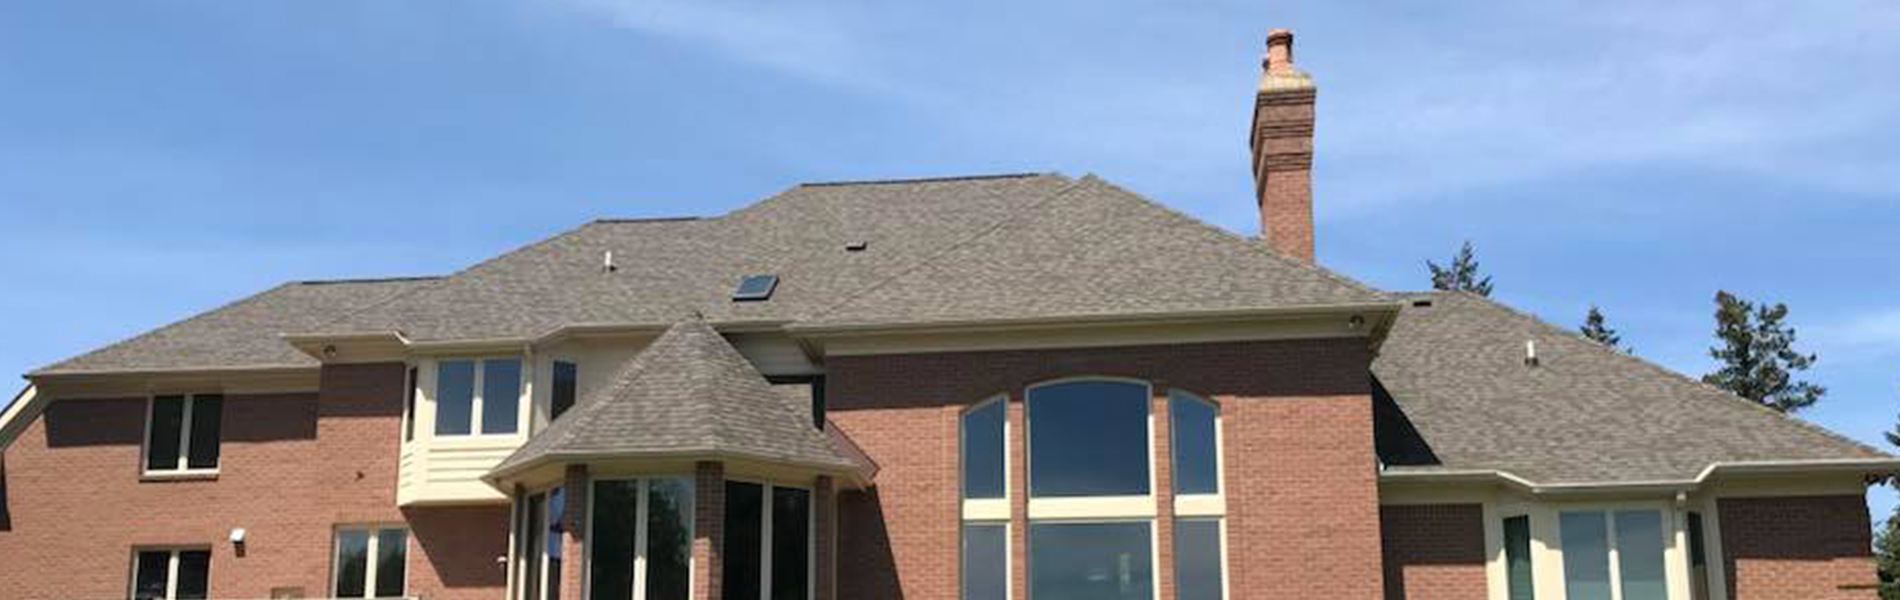 Jimmerson Roofing House